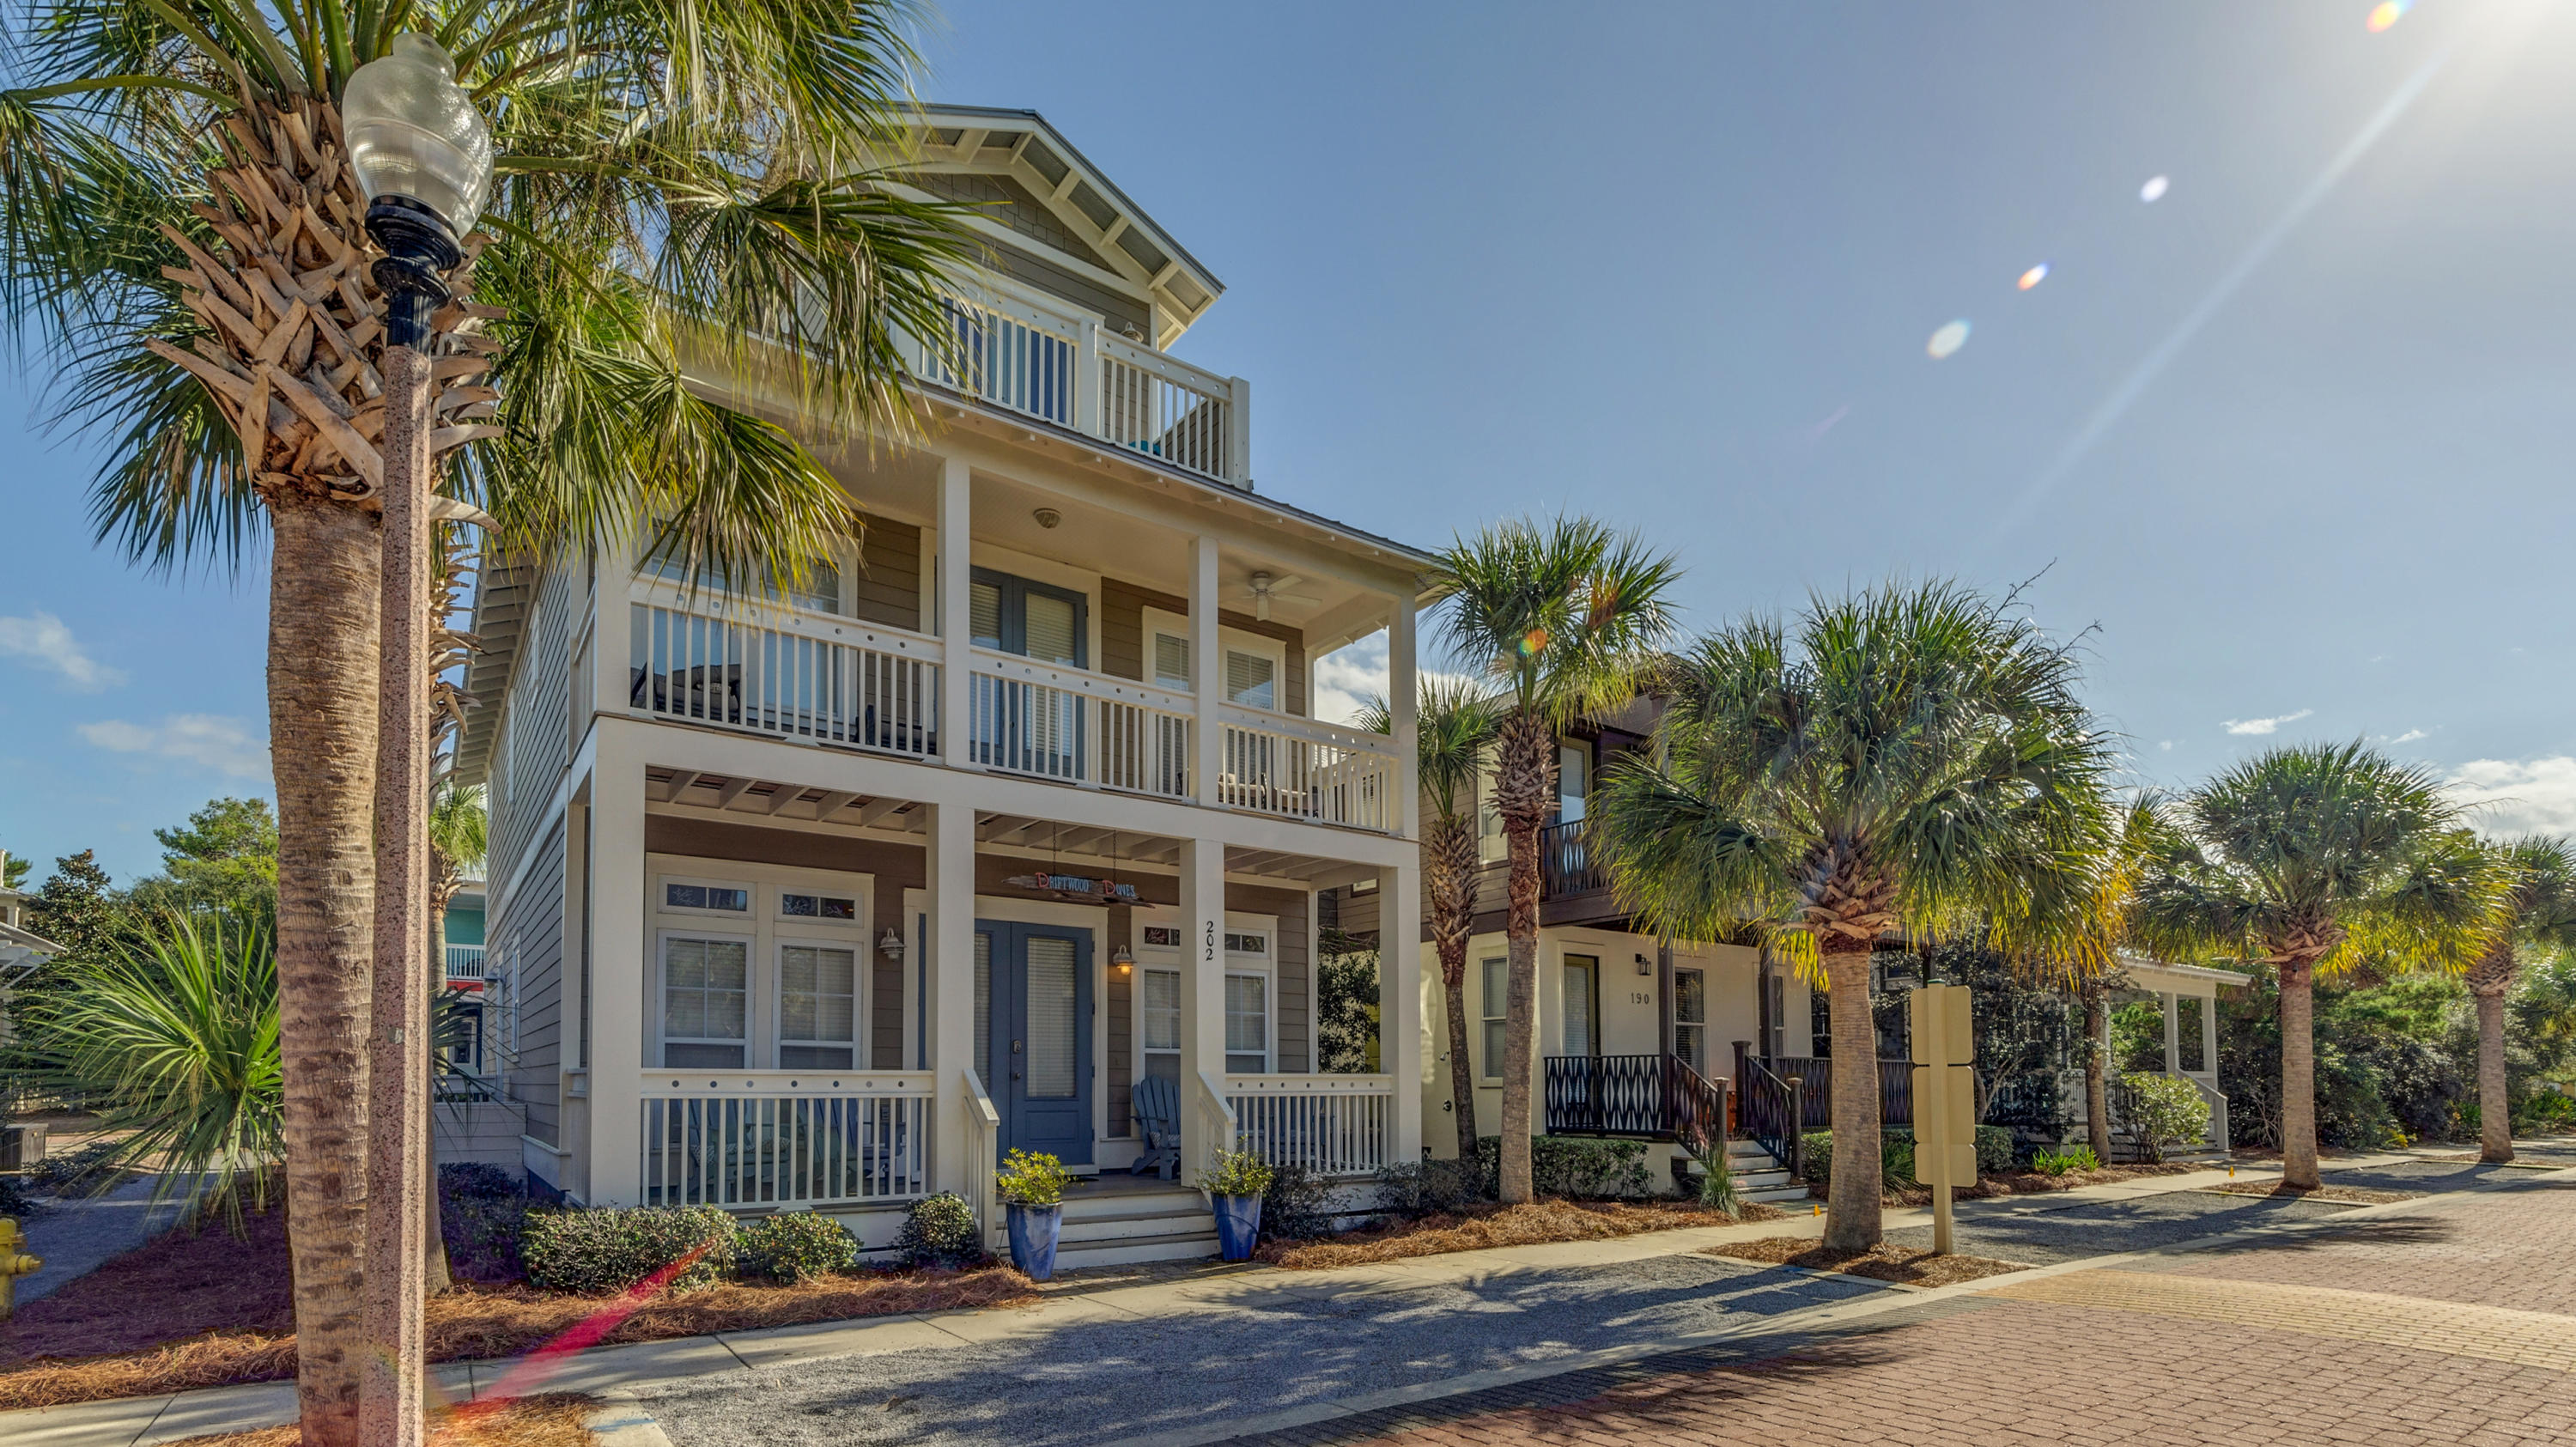 Charming, custom, craftsman home in Seacrest Beach. 202 Seacrest Beach Blvd West boasts 4 bedrooms,